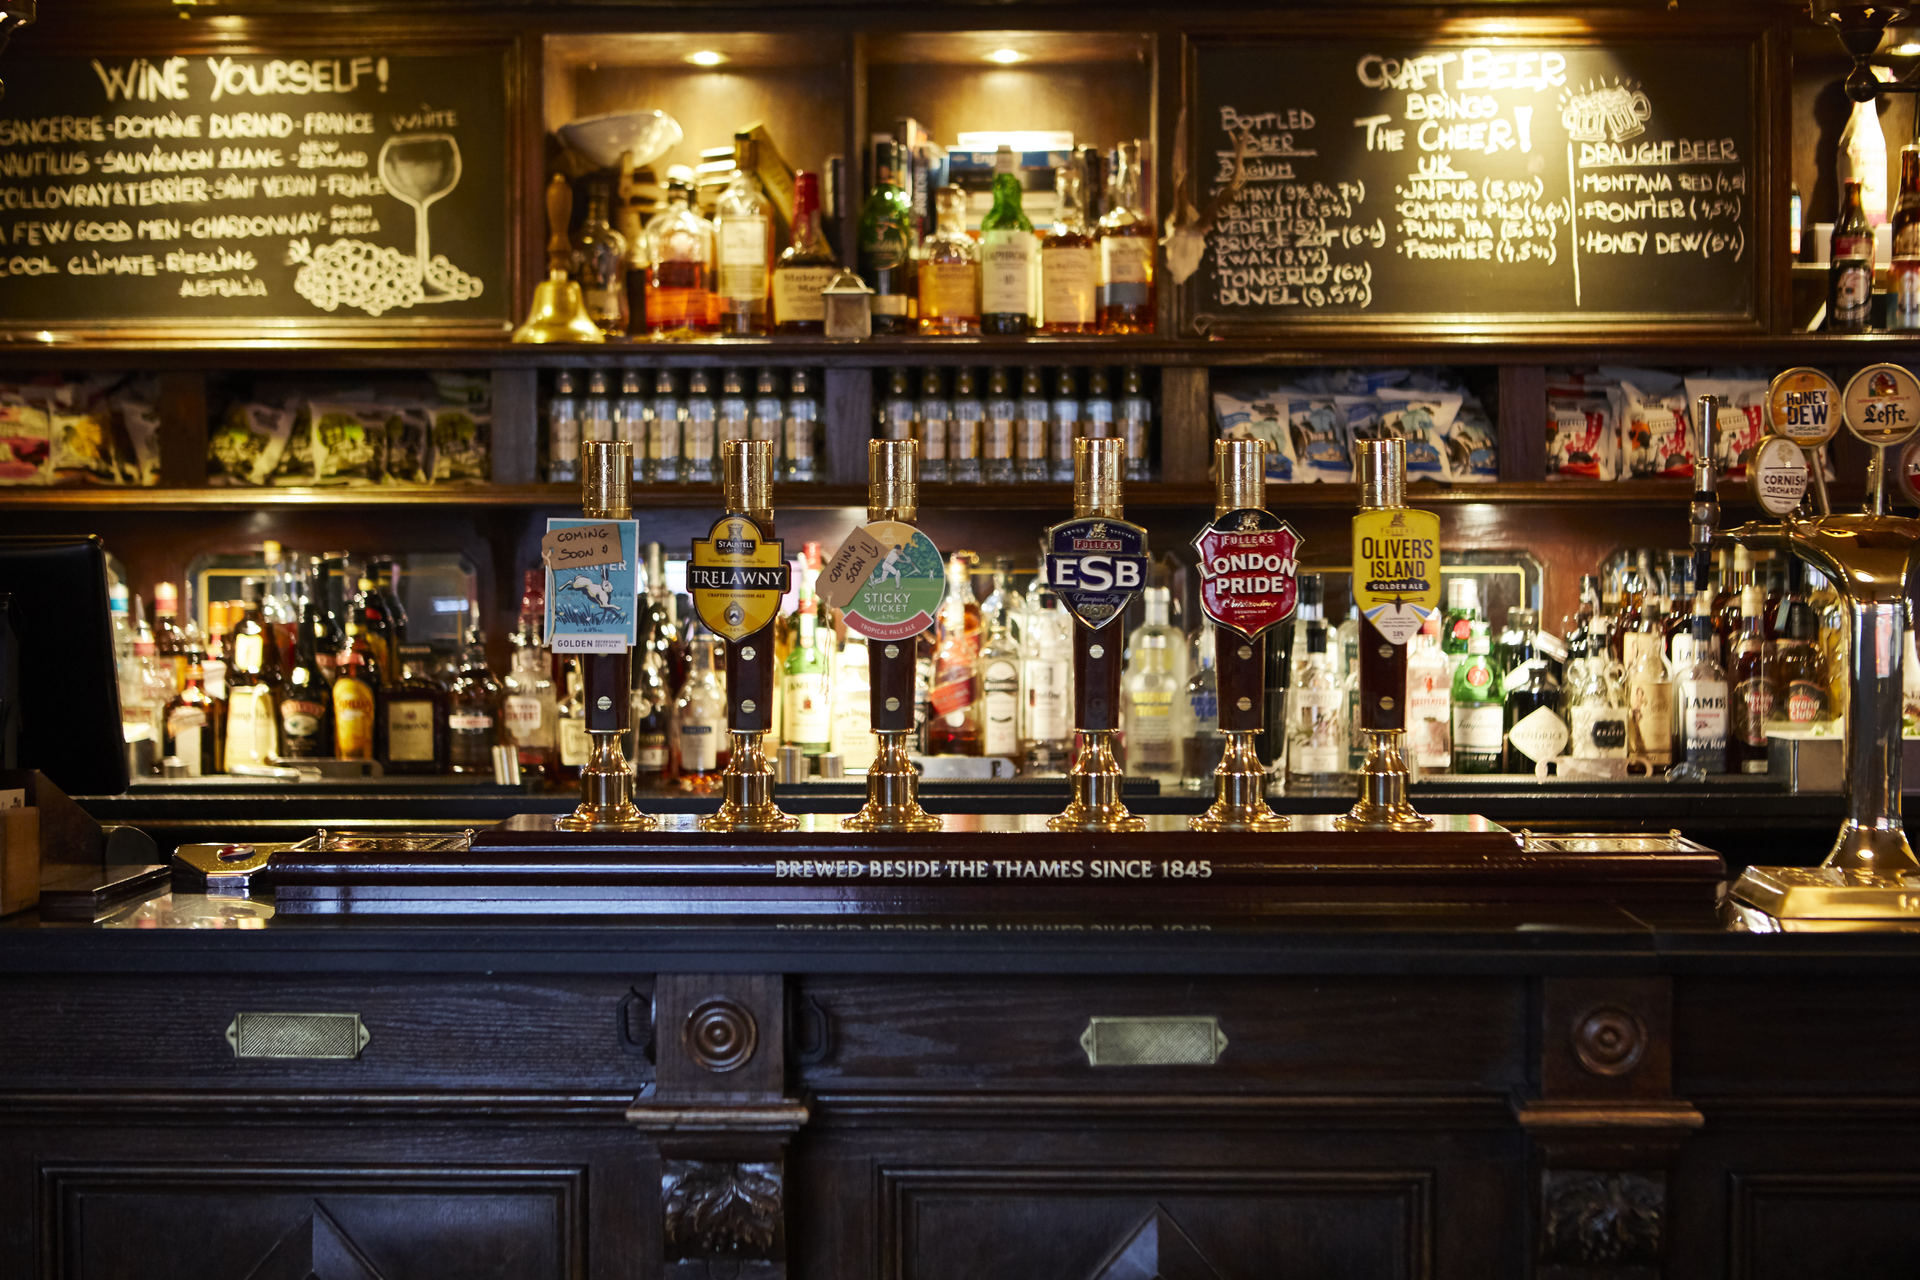 Hd Wallpapers West Palm Beach Ale House Www 8androidwall0 Ml